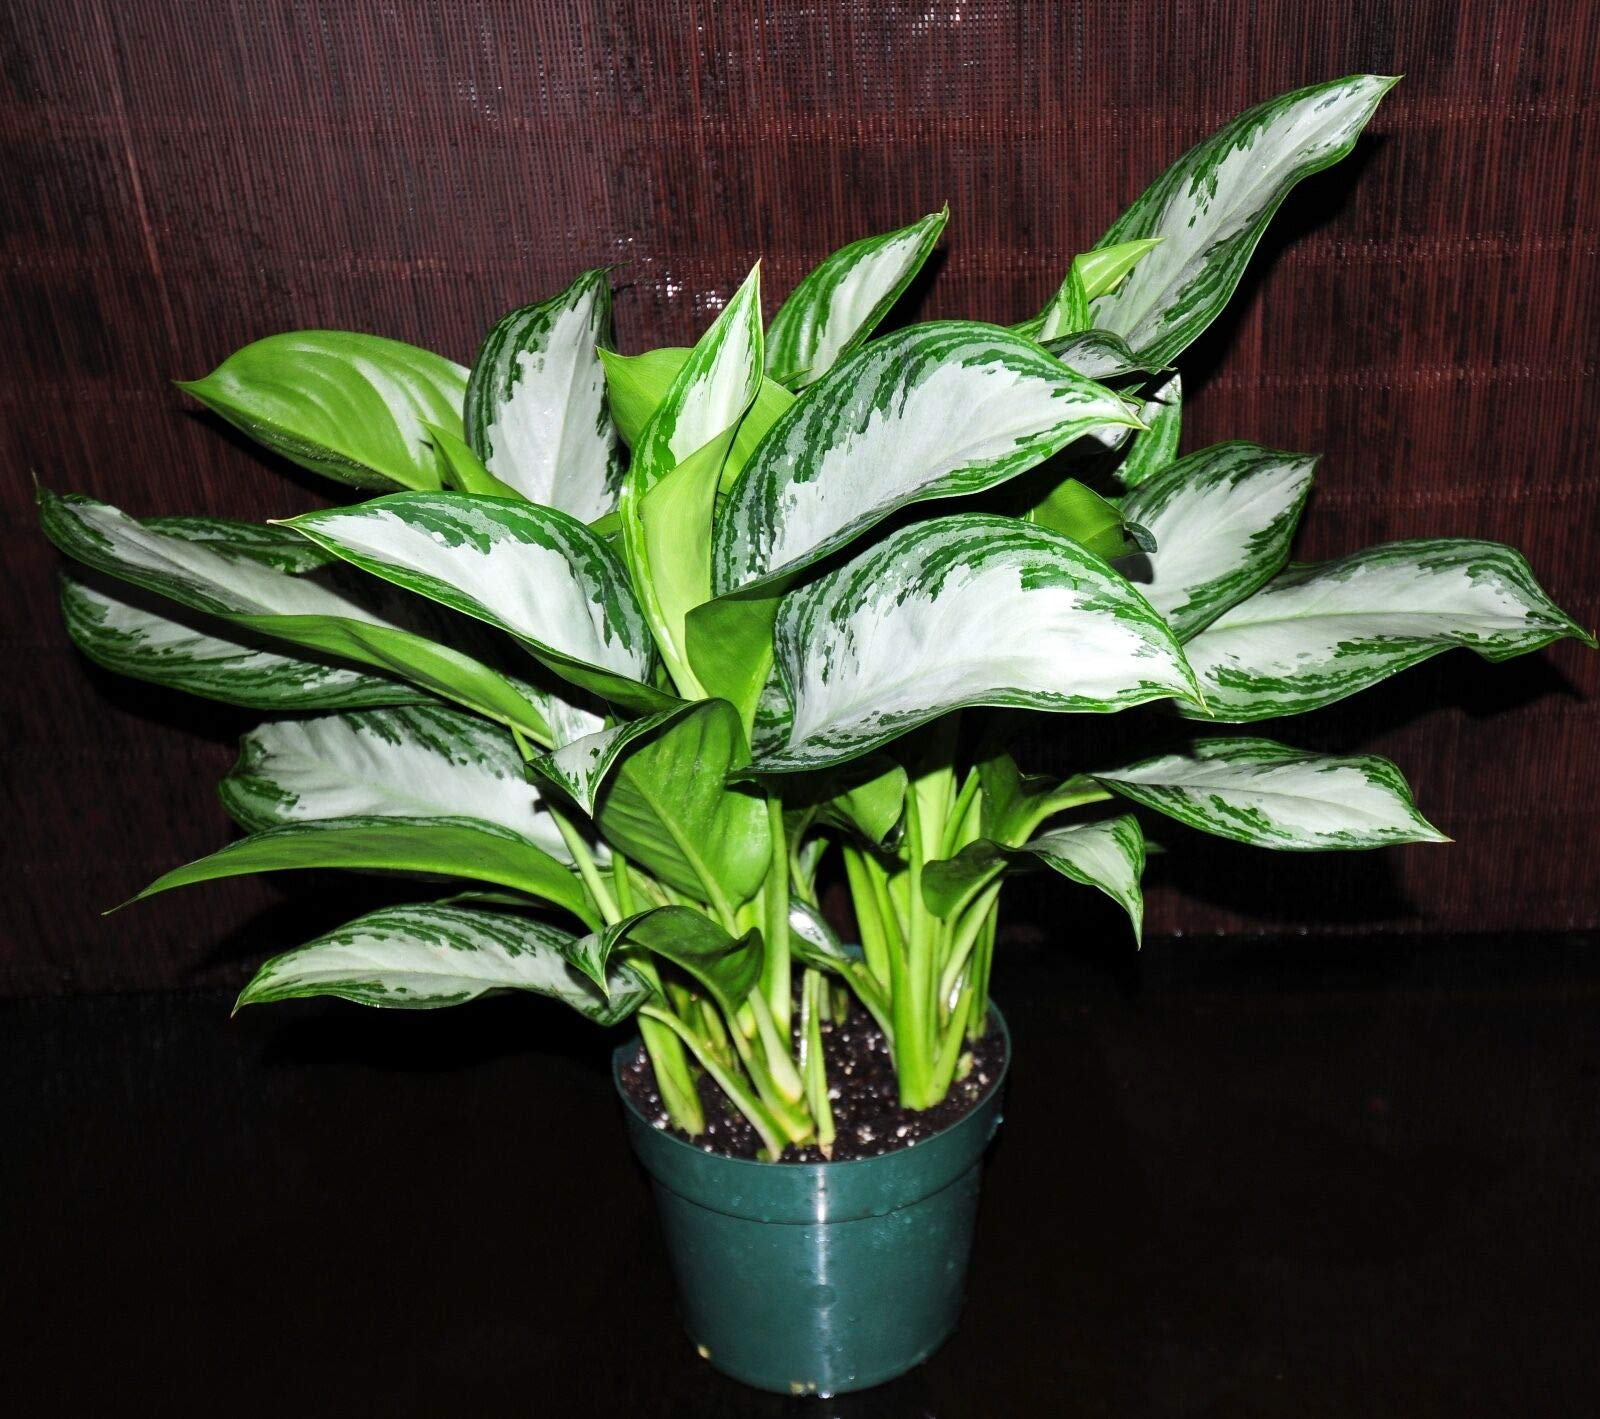 Aglaonema Silver Bay Very Large Plant in 8'' Pot Chinese Evergreen Tropical Plant (Premium Quality) by AY-Premium